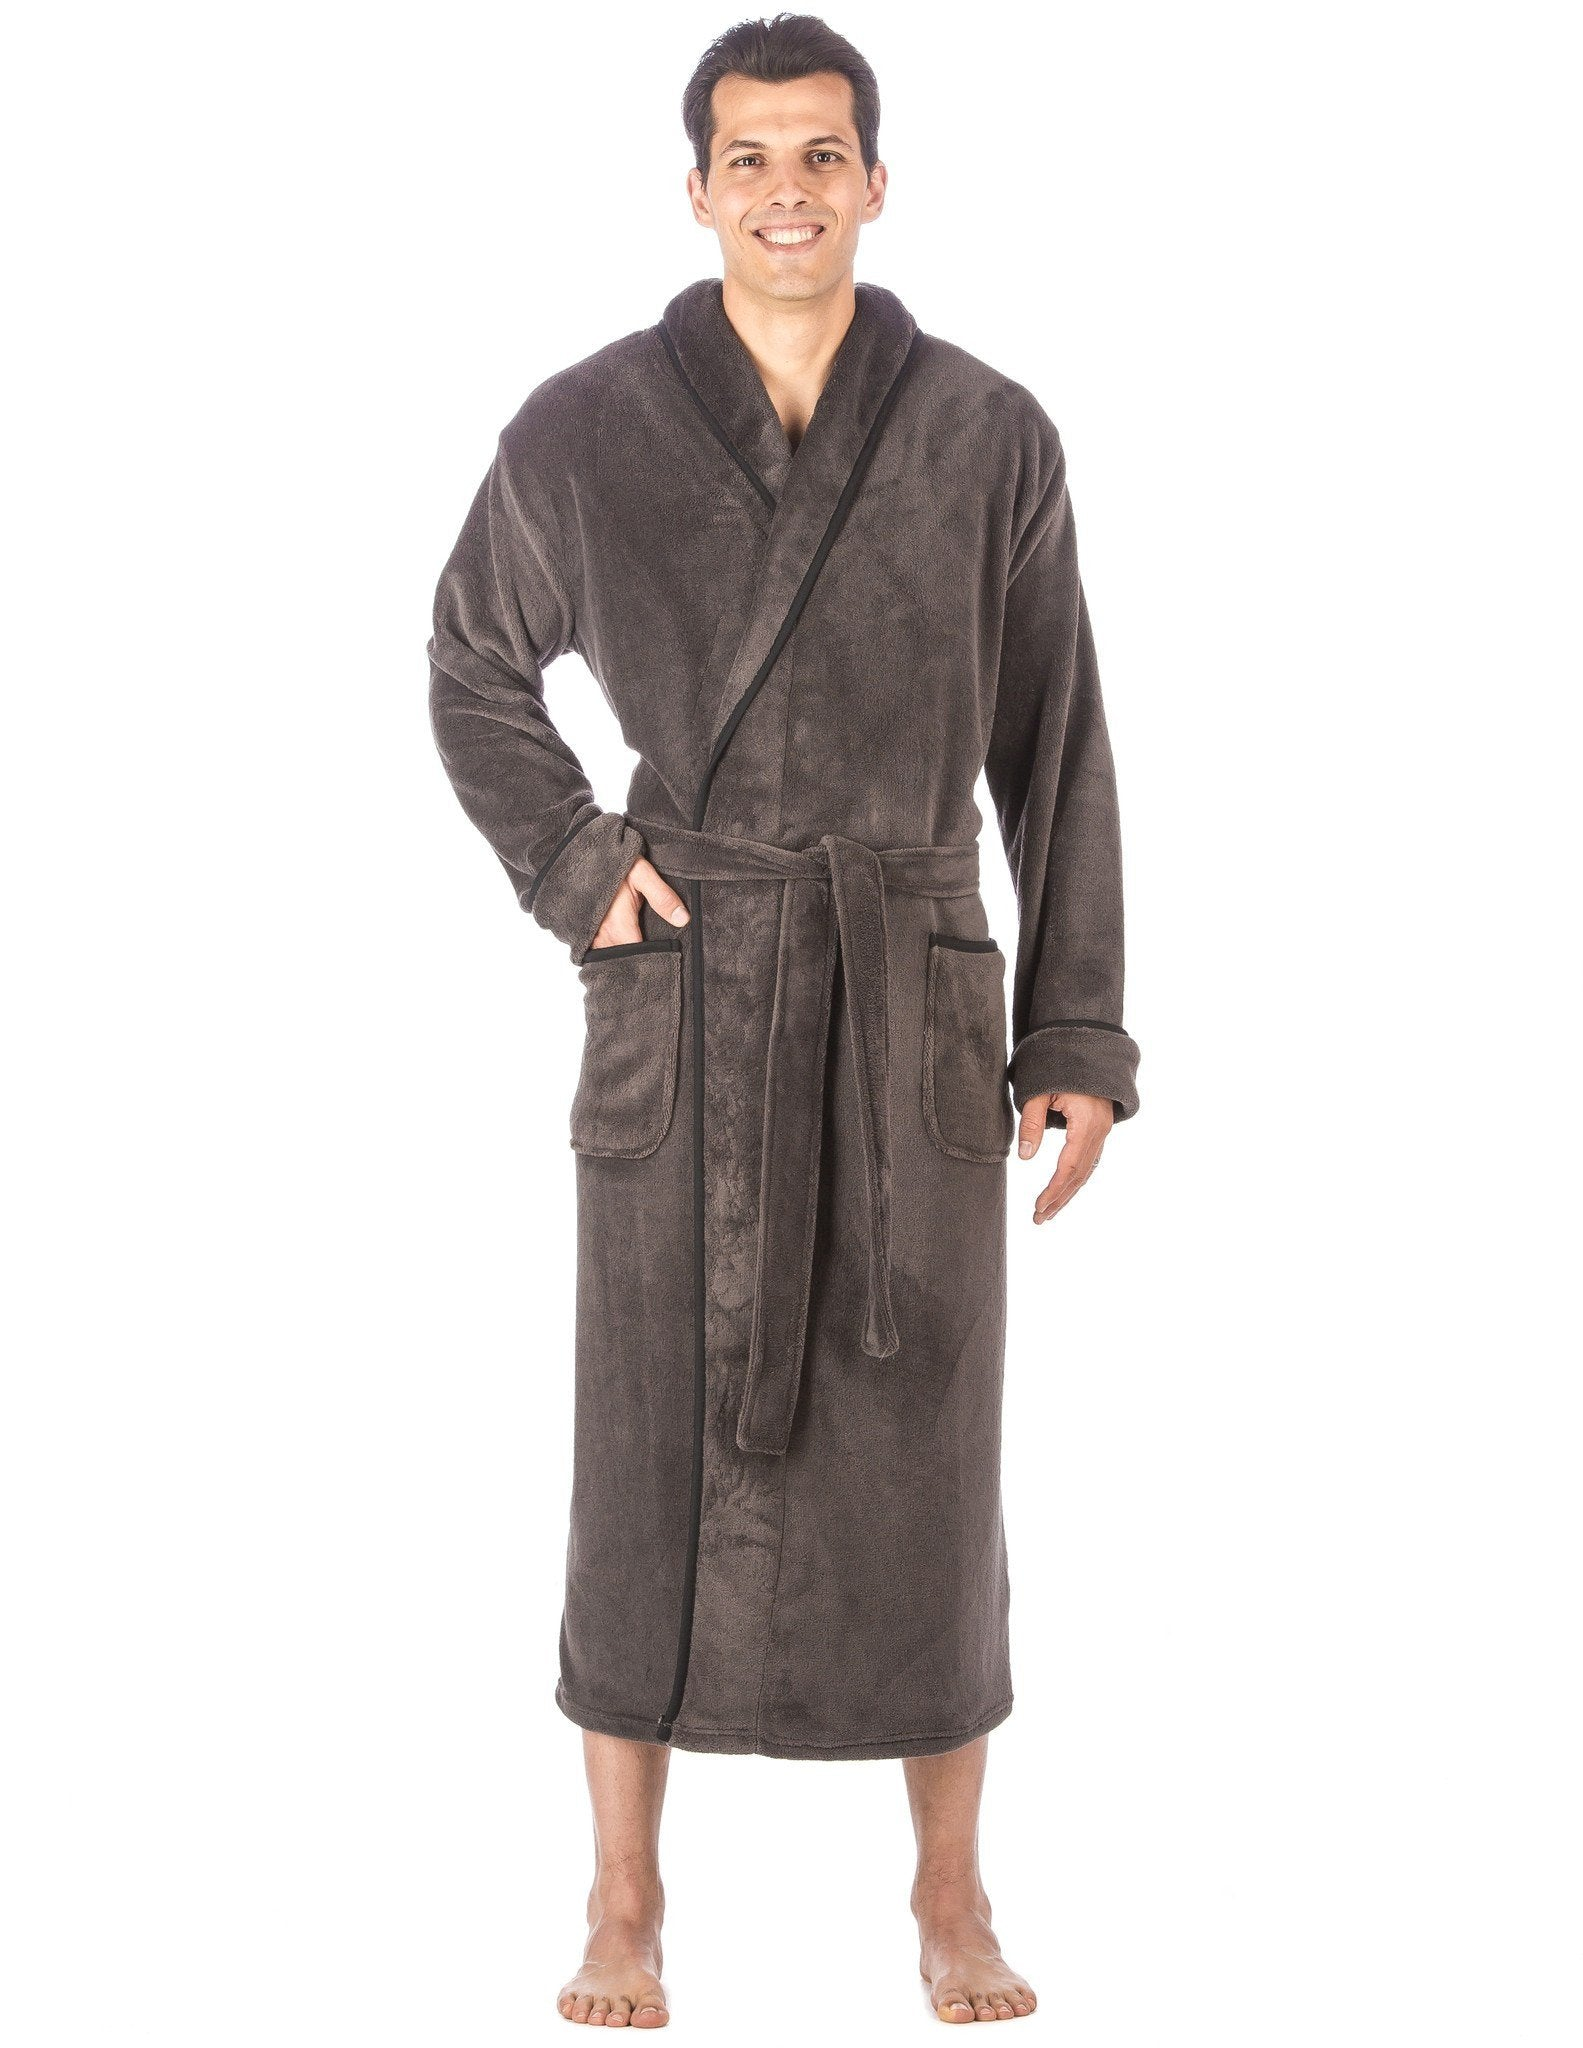 Men s Premium Coral Fleece Long Hooded Plush Spa Bath Robe - Dark Gray bb0051cca